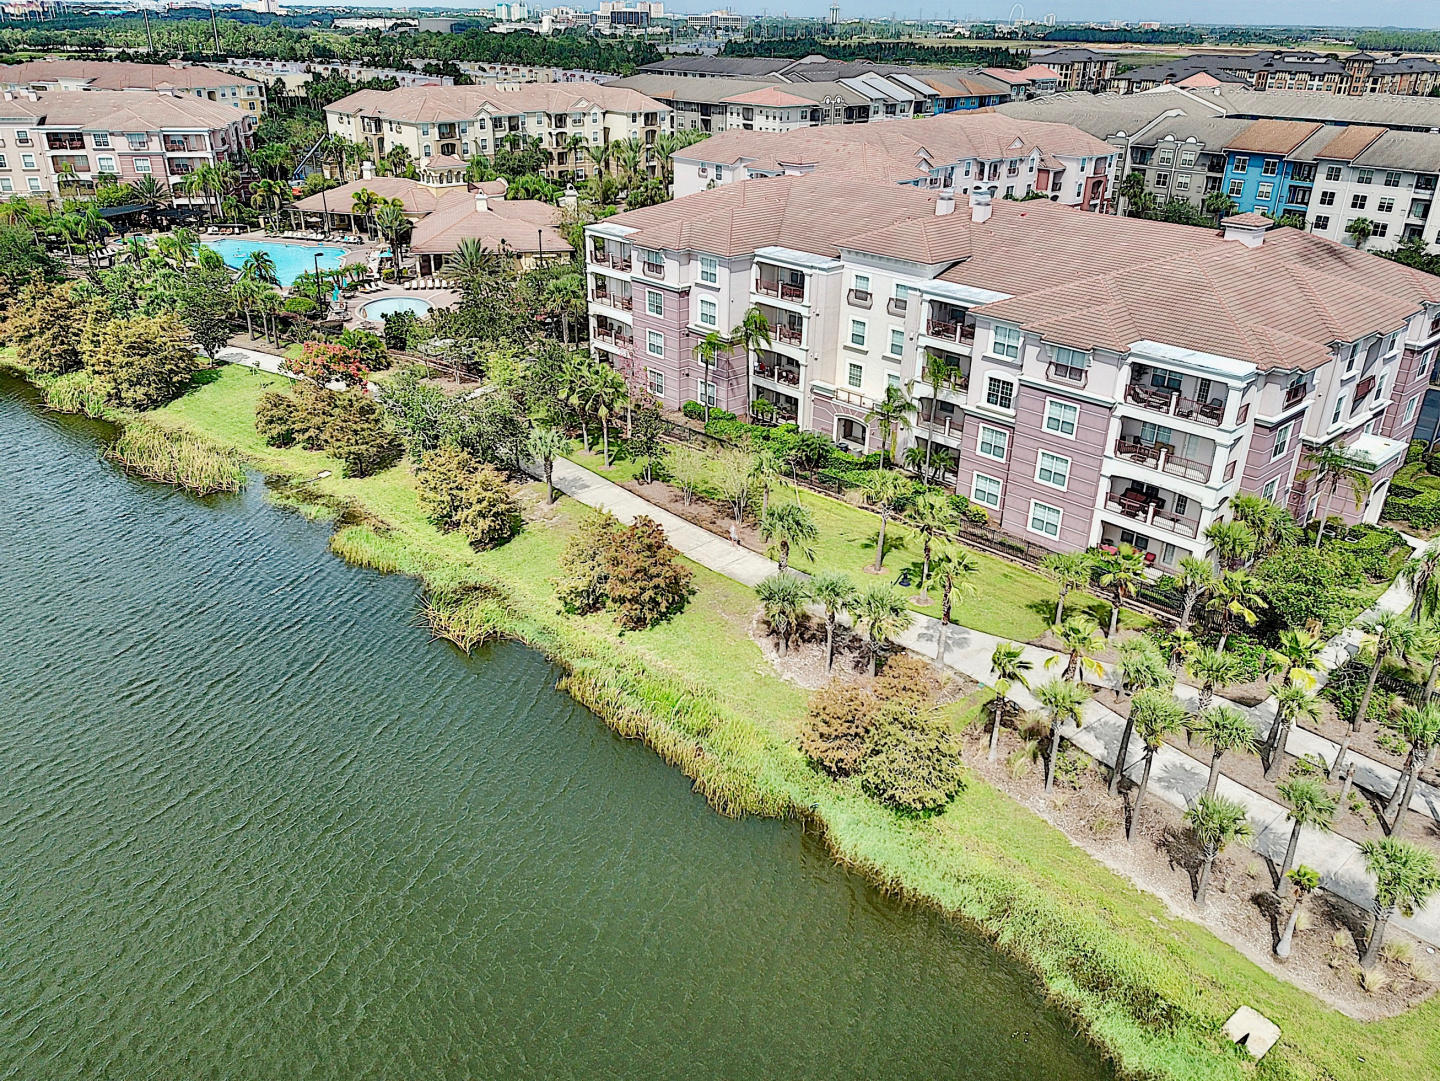 Vista Cay Luxury Lakeview 3 bedroom condo Slide-30